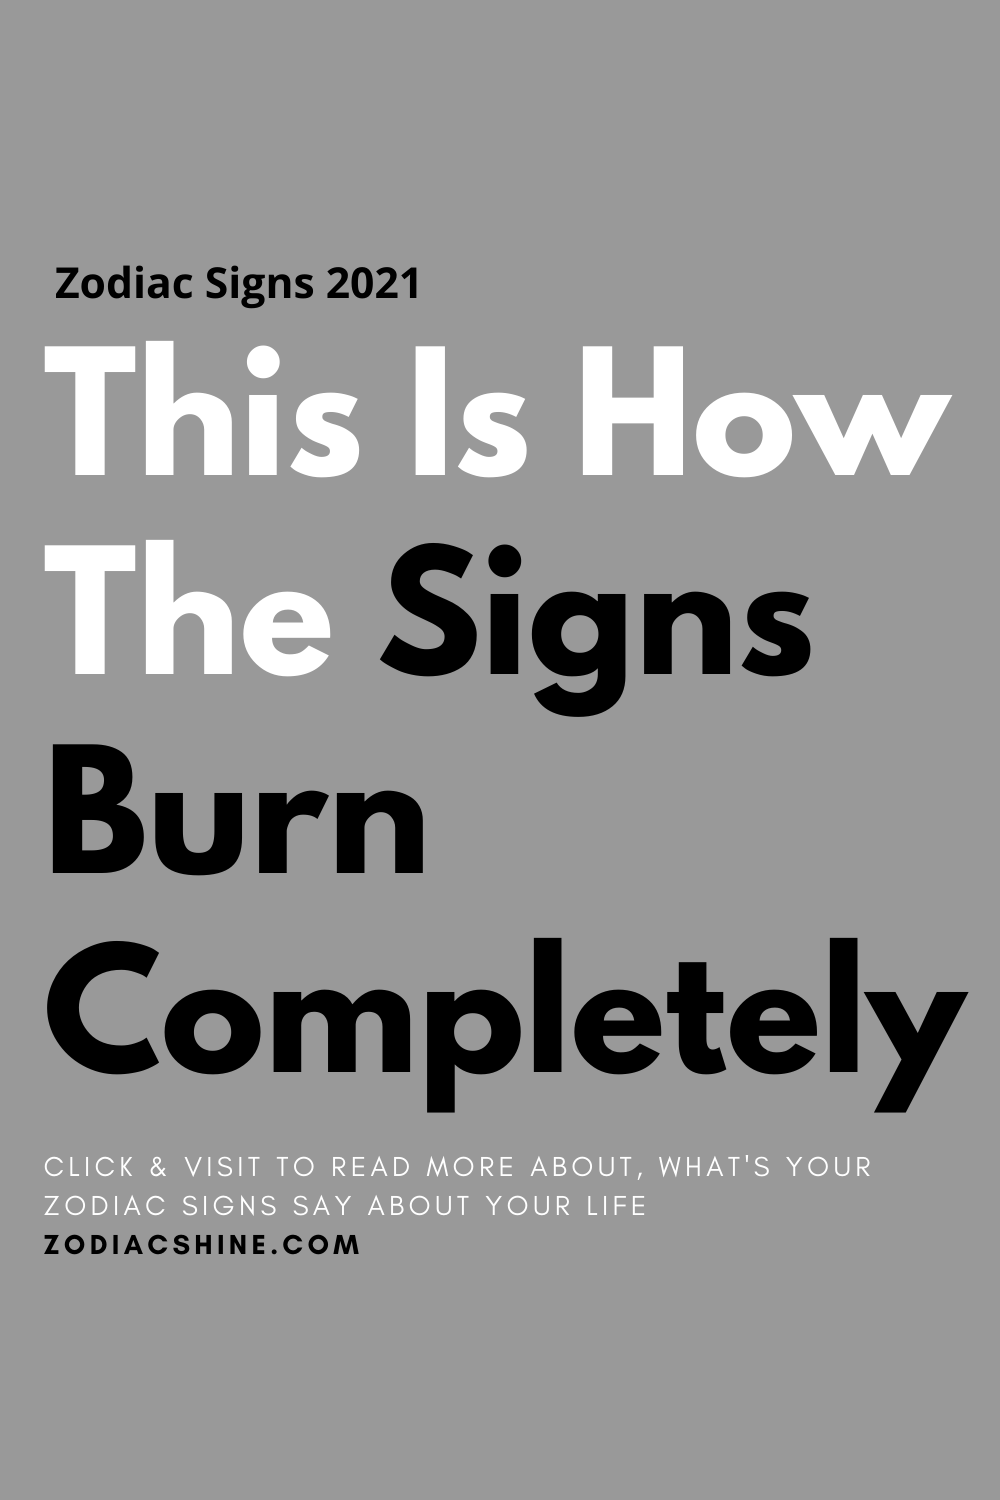 This Is How The Signs Burn Completely